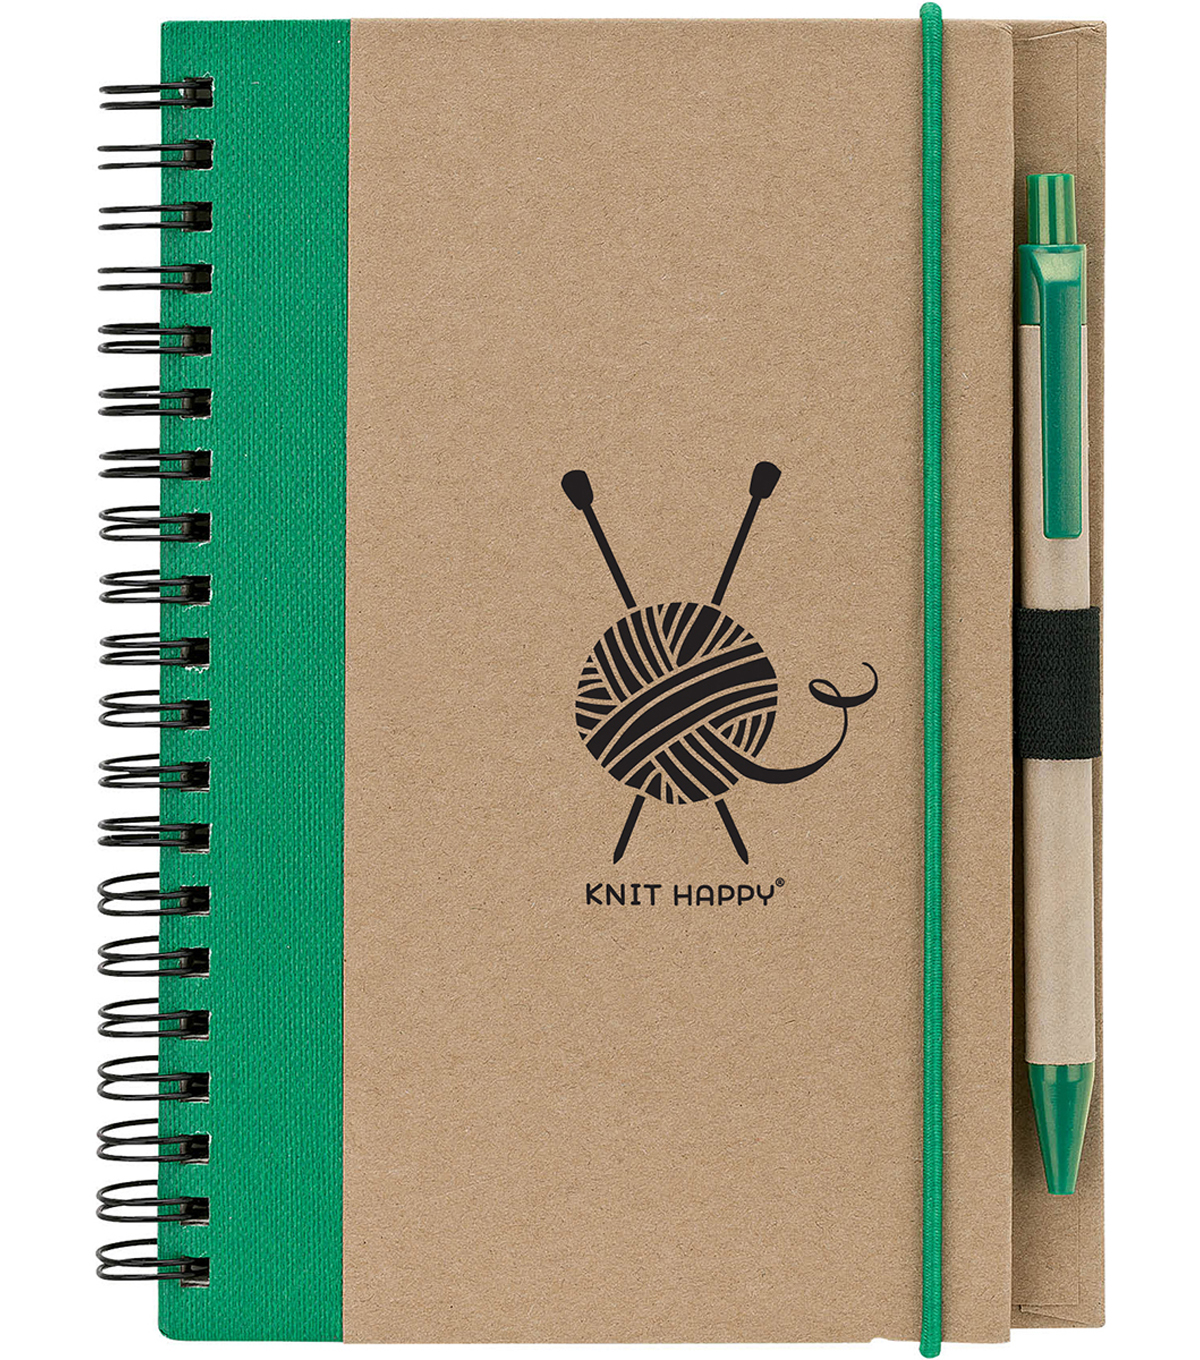 Knit Happy Eco Journal w/Pen-Green